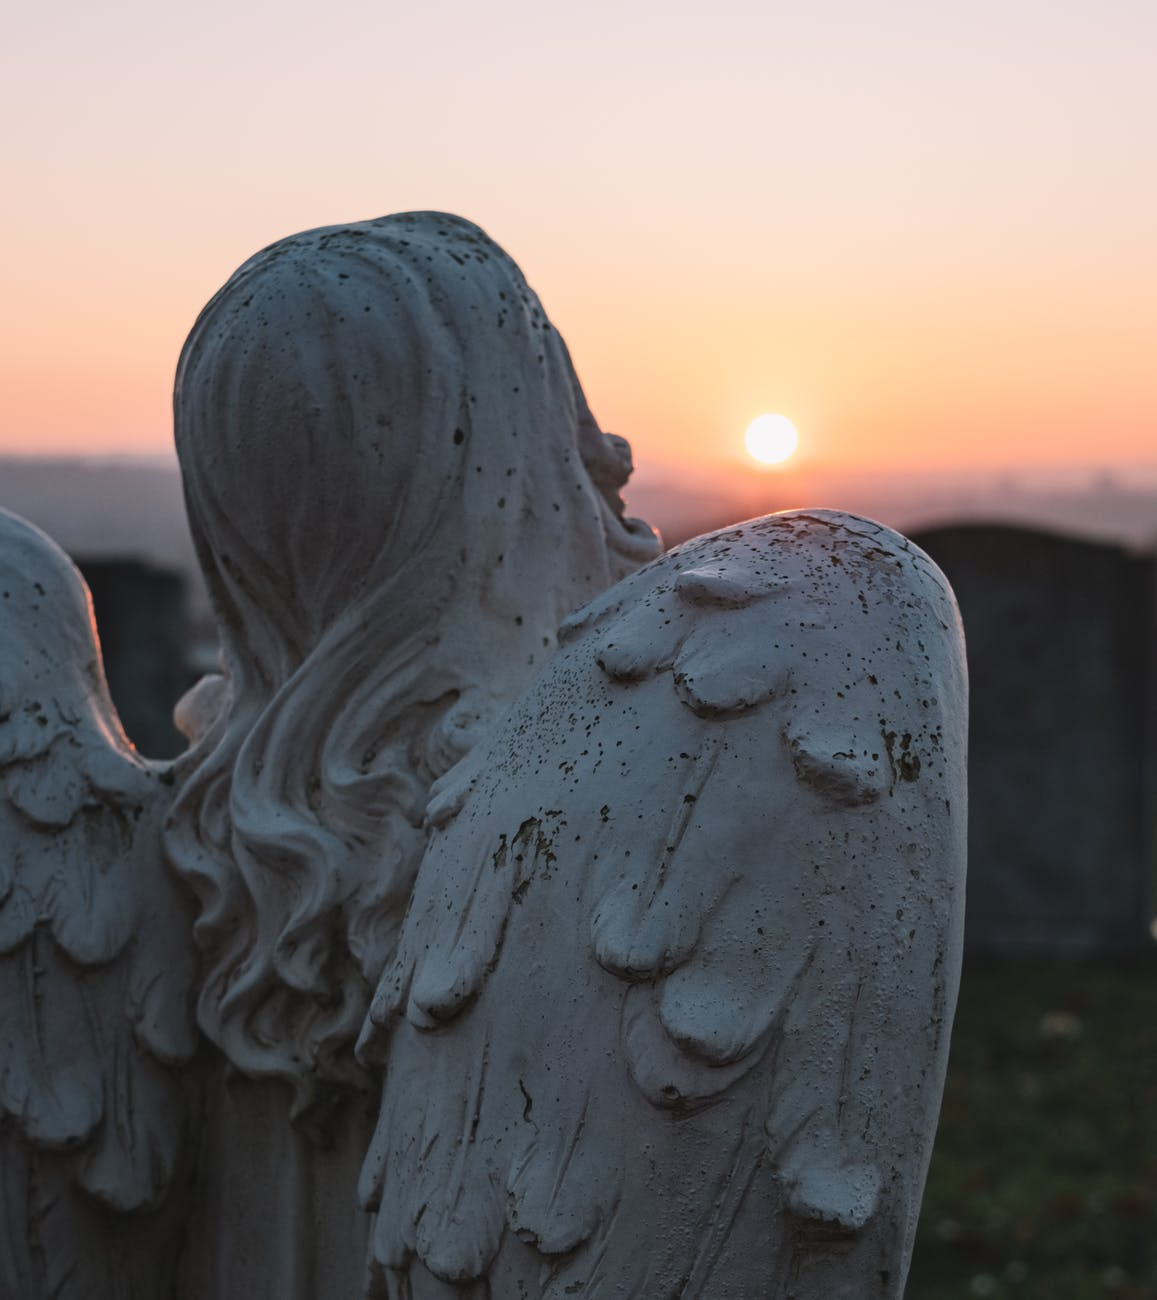 angelic statue and sunset scenery